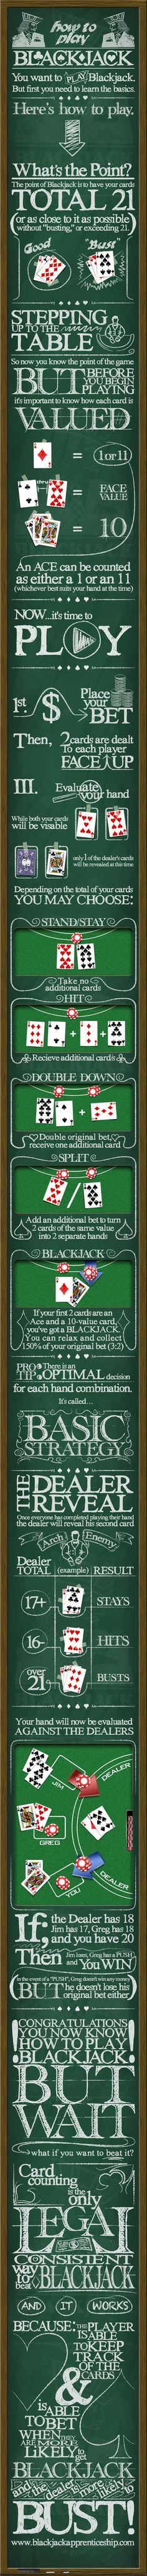 If you want to wager on Blackjack go to http://blackjackcardcounting.net/